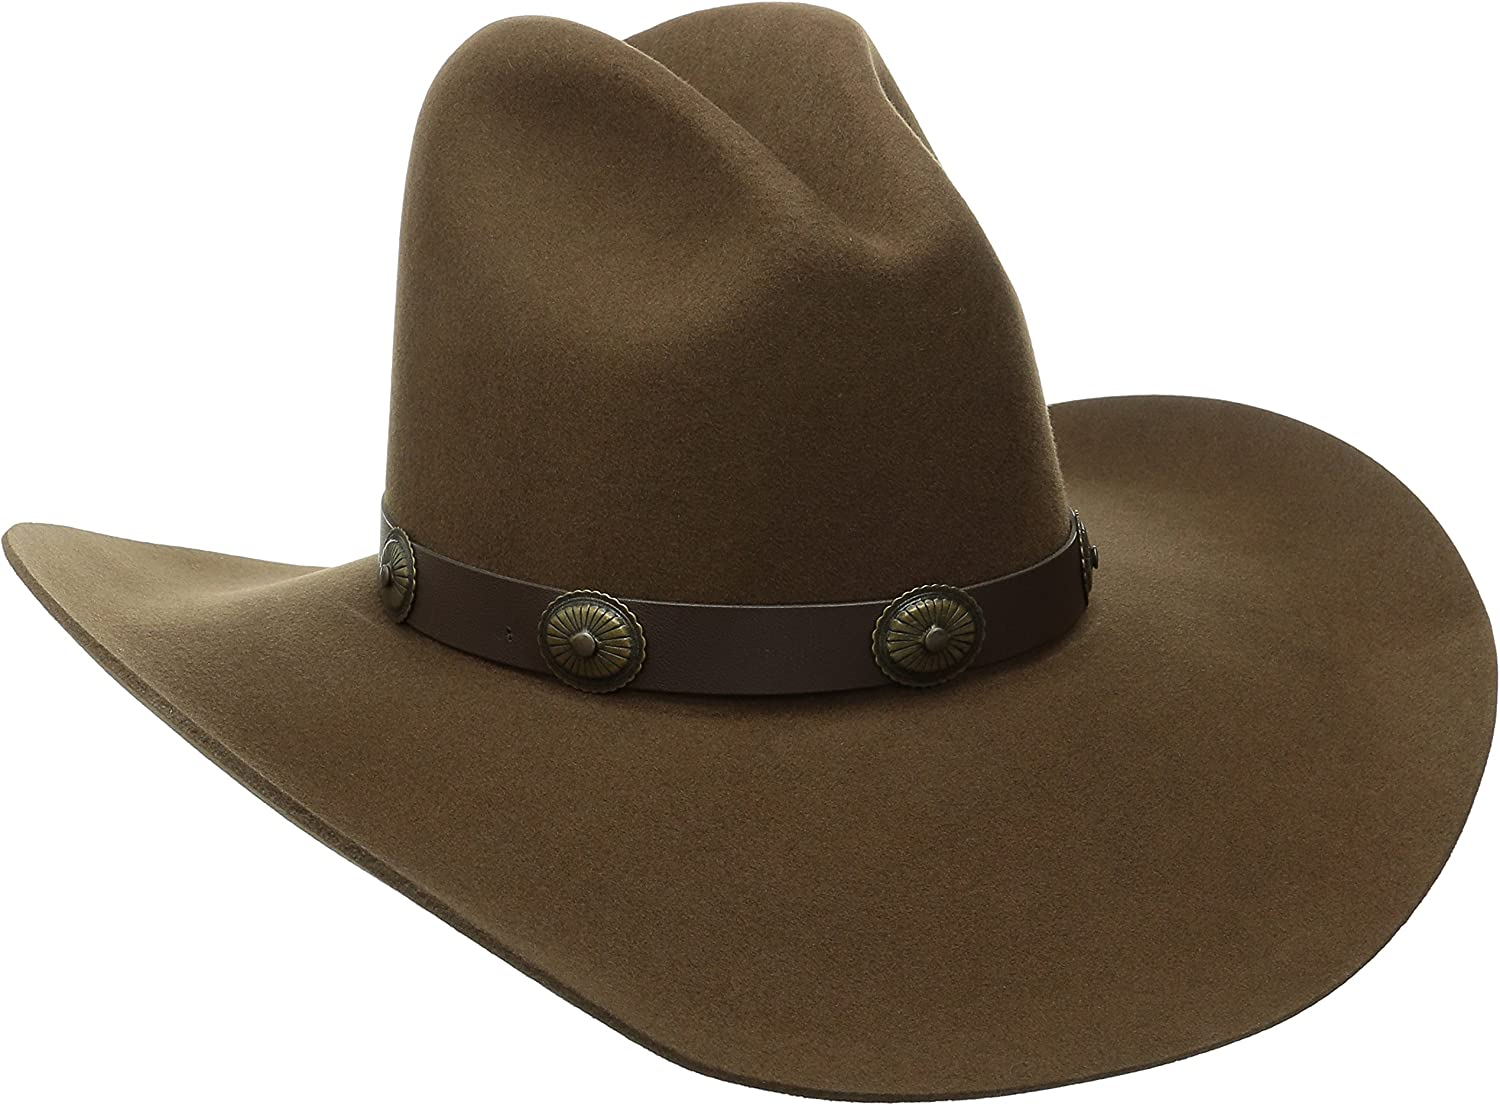 Bailey Of Hollywood Western Men S Wool Felt Tombstone Hat At Amazon Men S Clothing Store